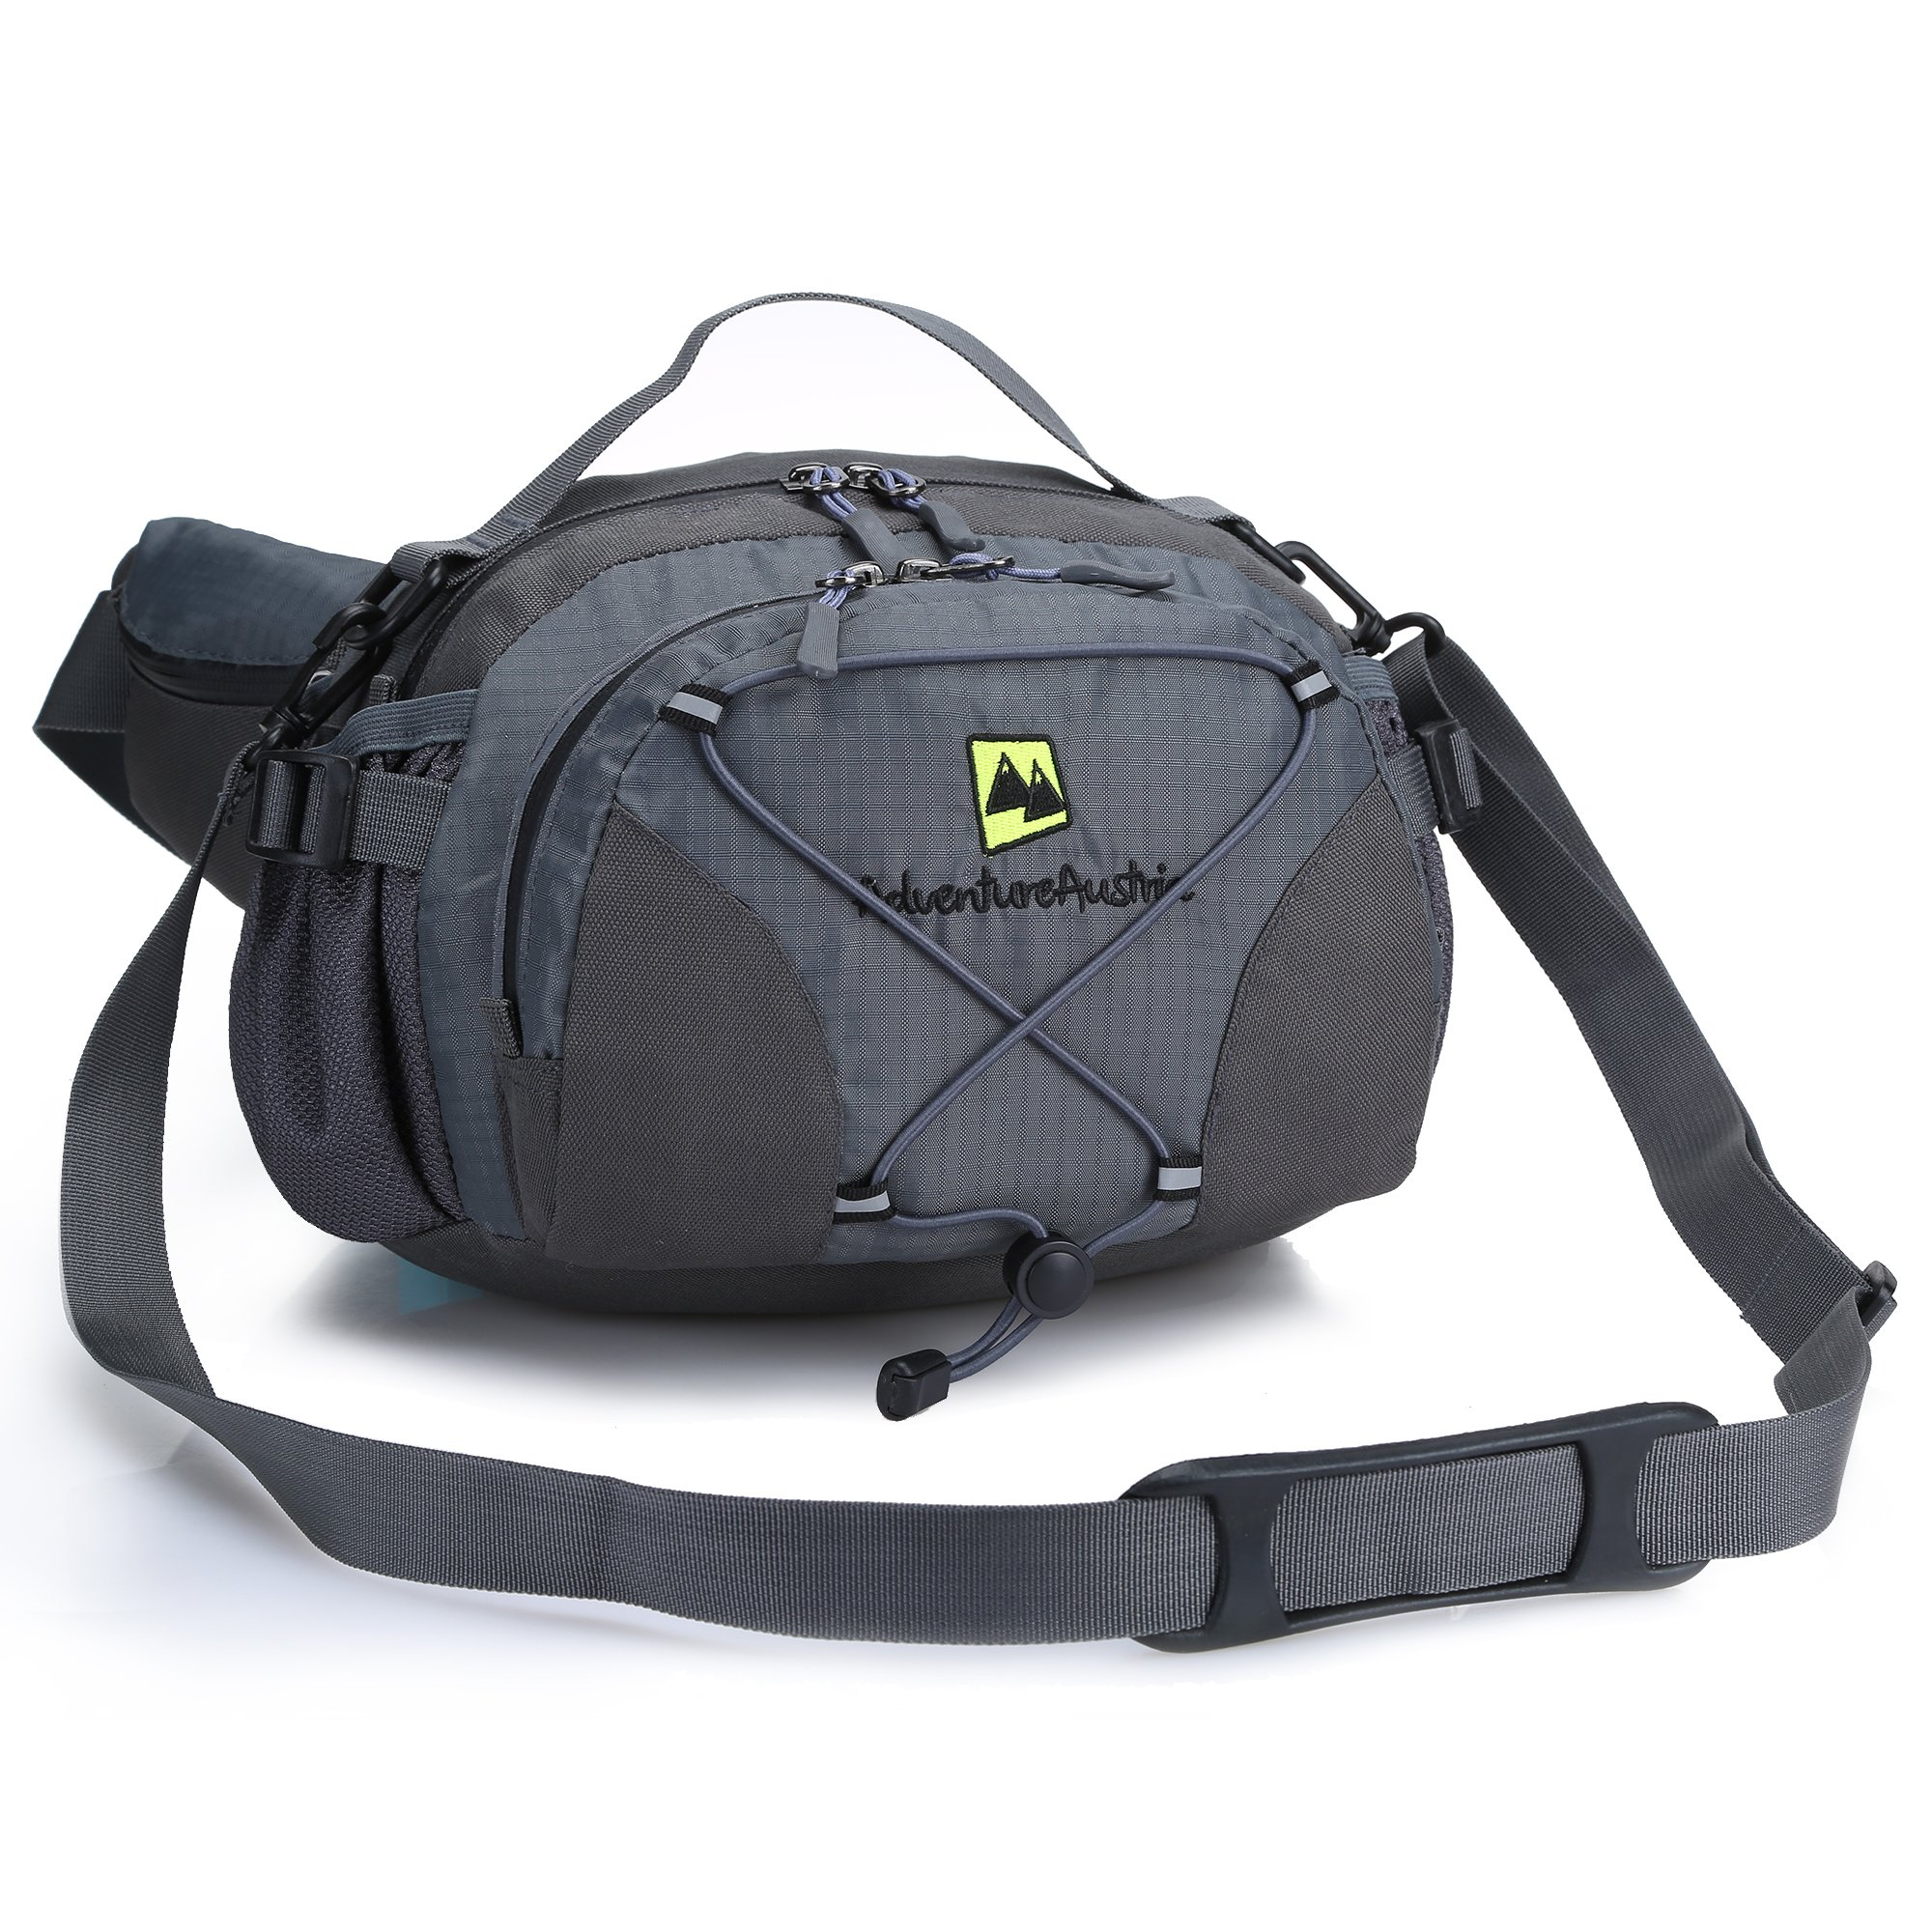 Christmas Tree Running Lumbar Pack For Travel Outdoor Sports Walking Travel Waist Pack,travel Pocket With Adjustable Belt